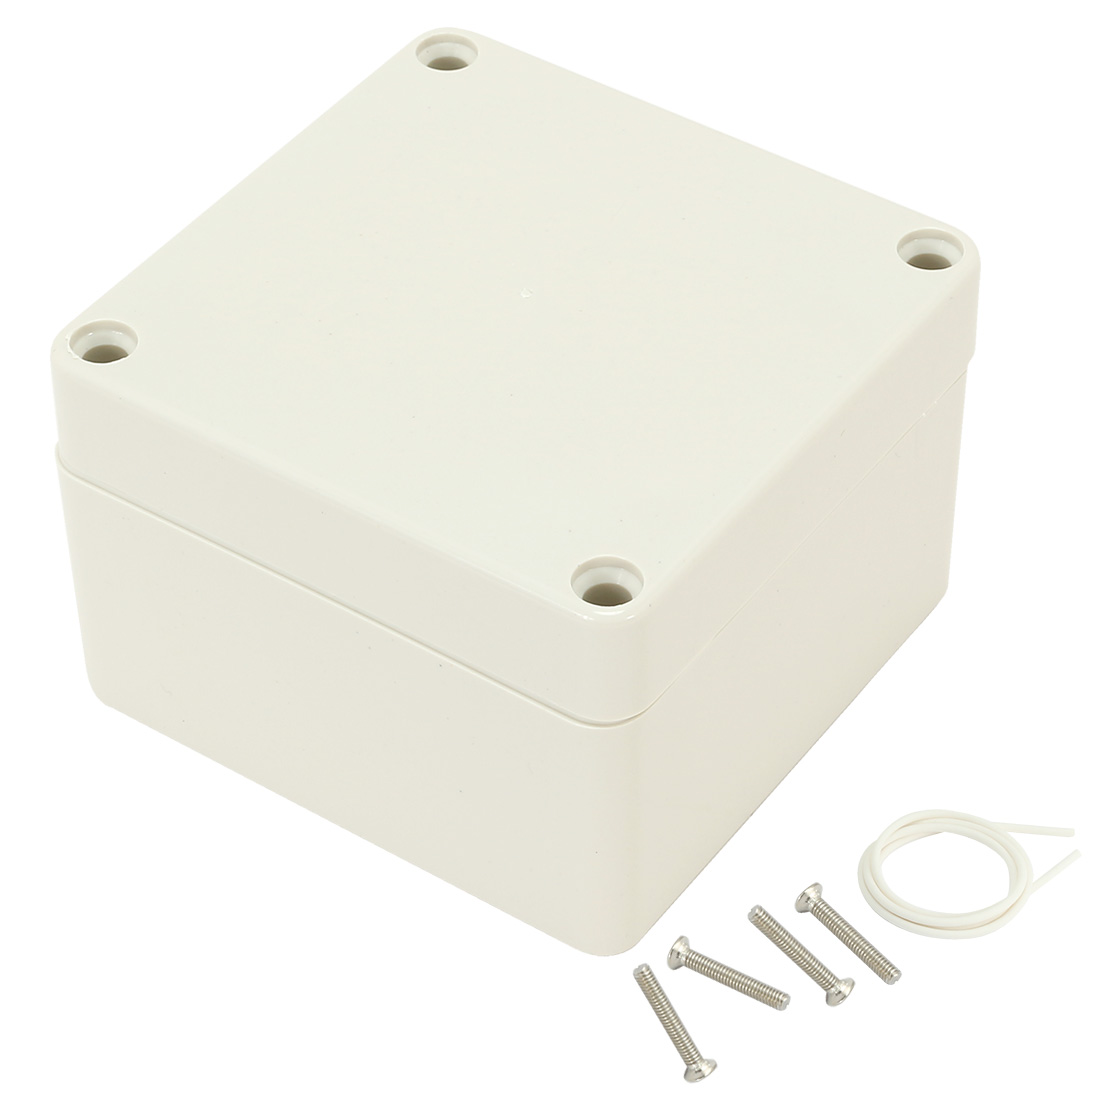 "3.3""x3.2""x2.2""(83mmx81mmx56mm) ABS Junction Box Universal Electric Project Enclosure"